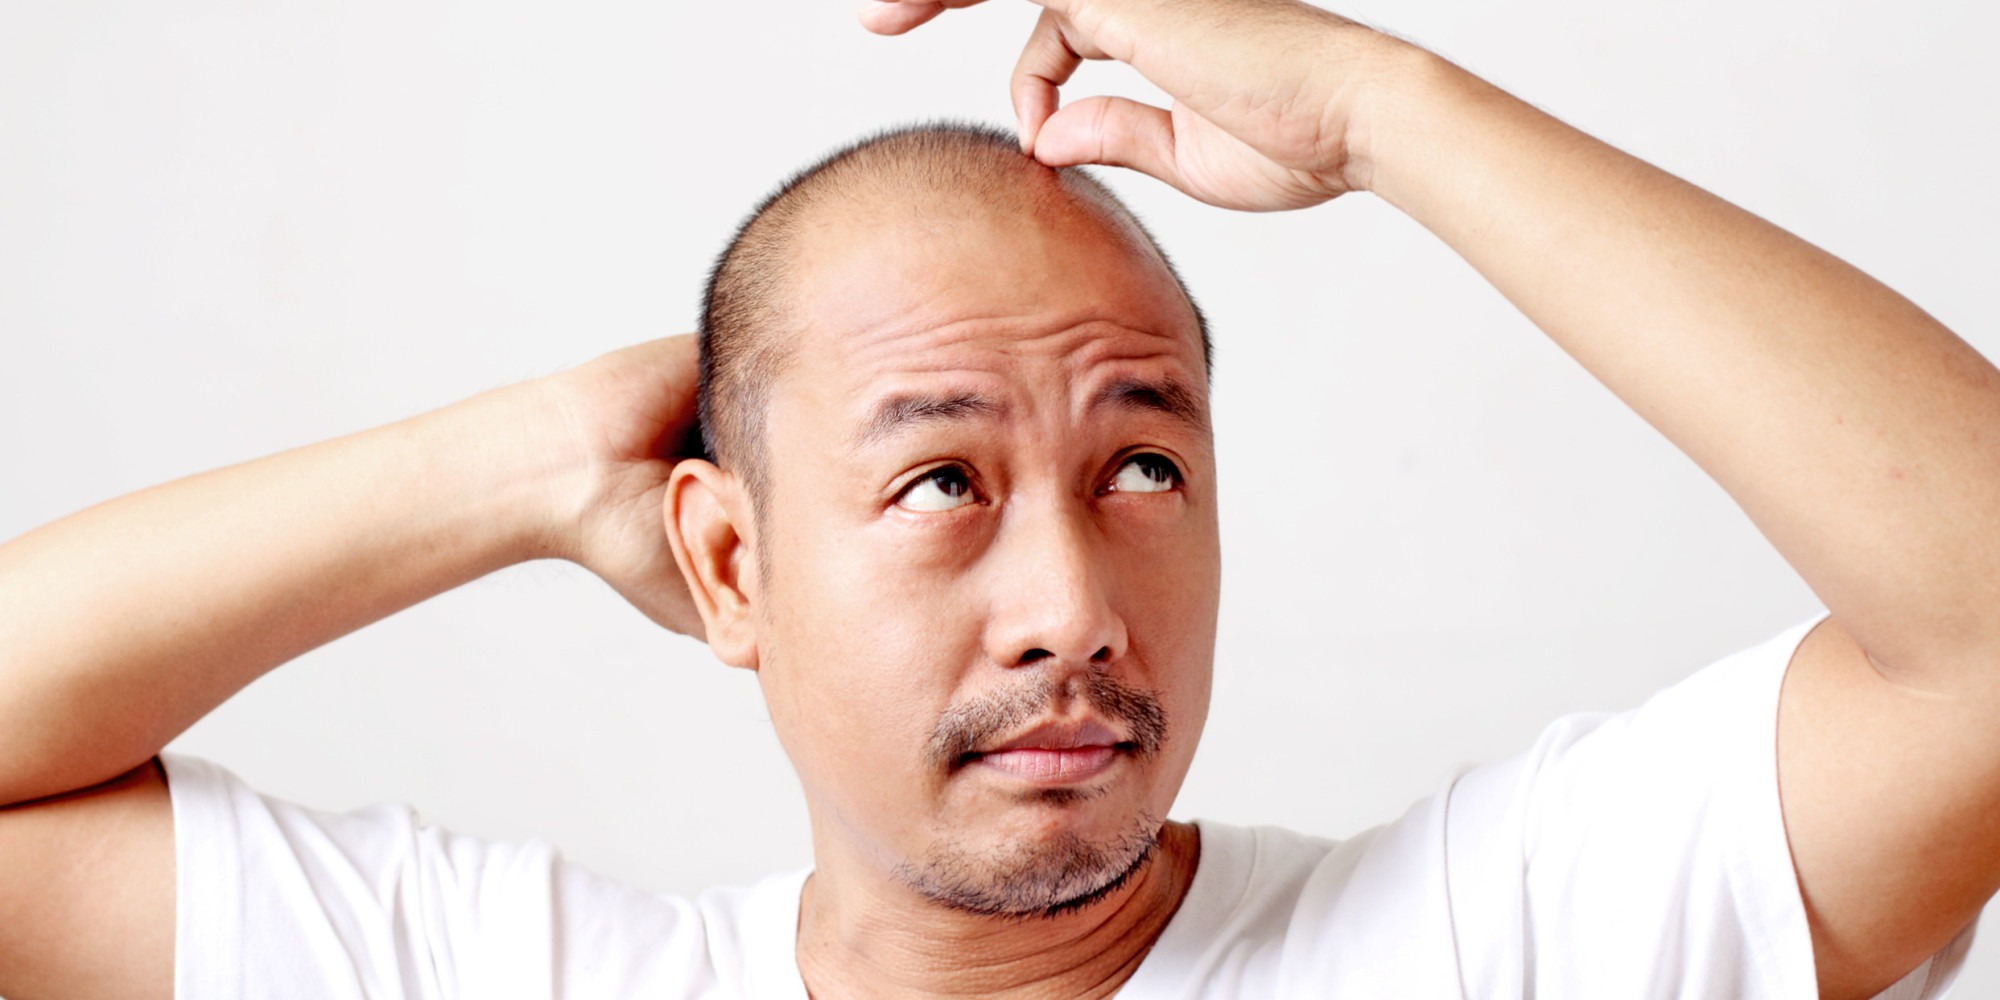 Should you invest in a Minoxidil Shampoo if you're going bald?